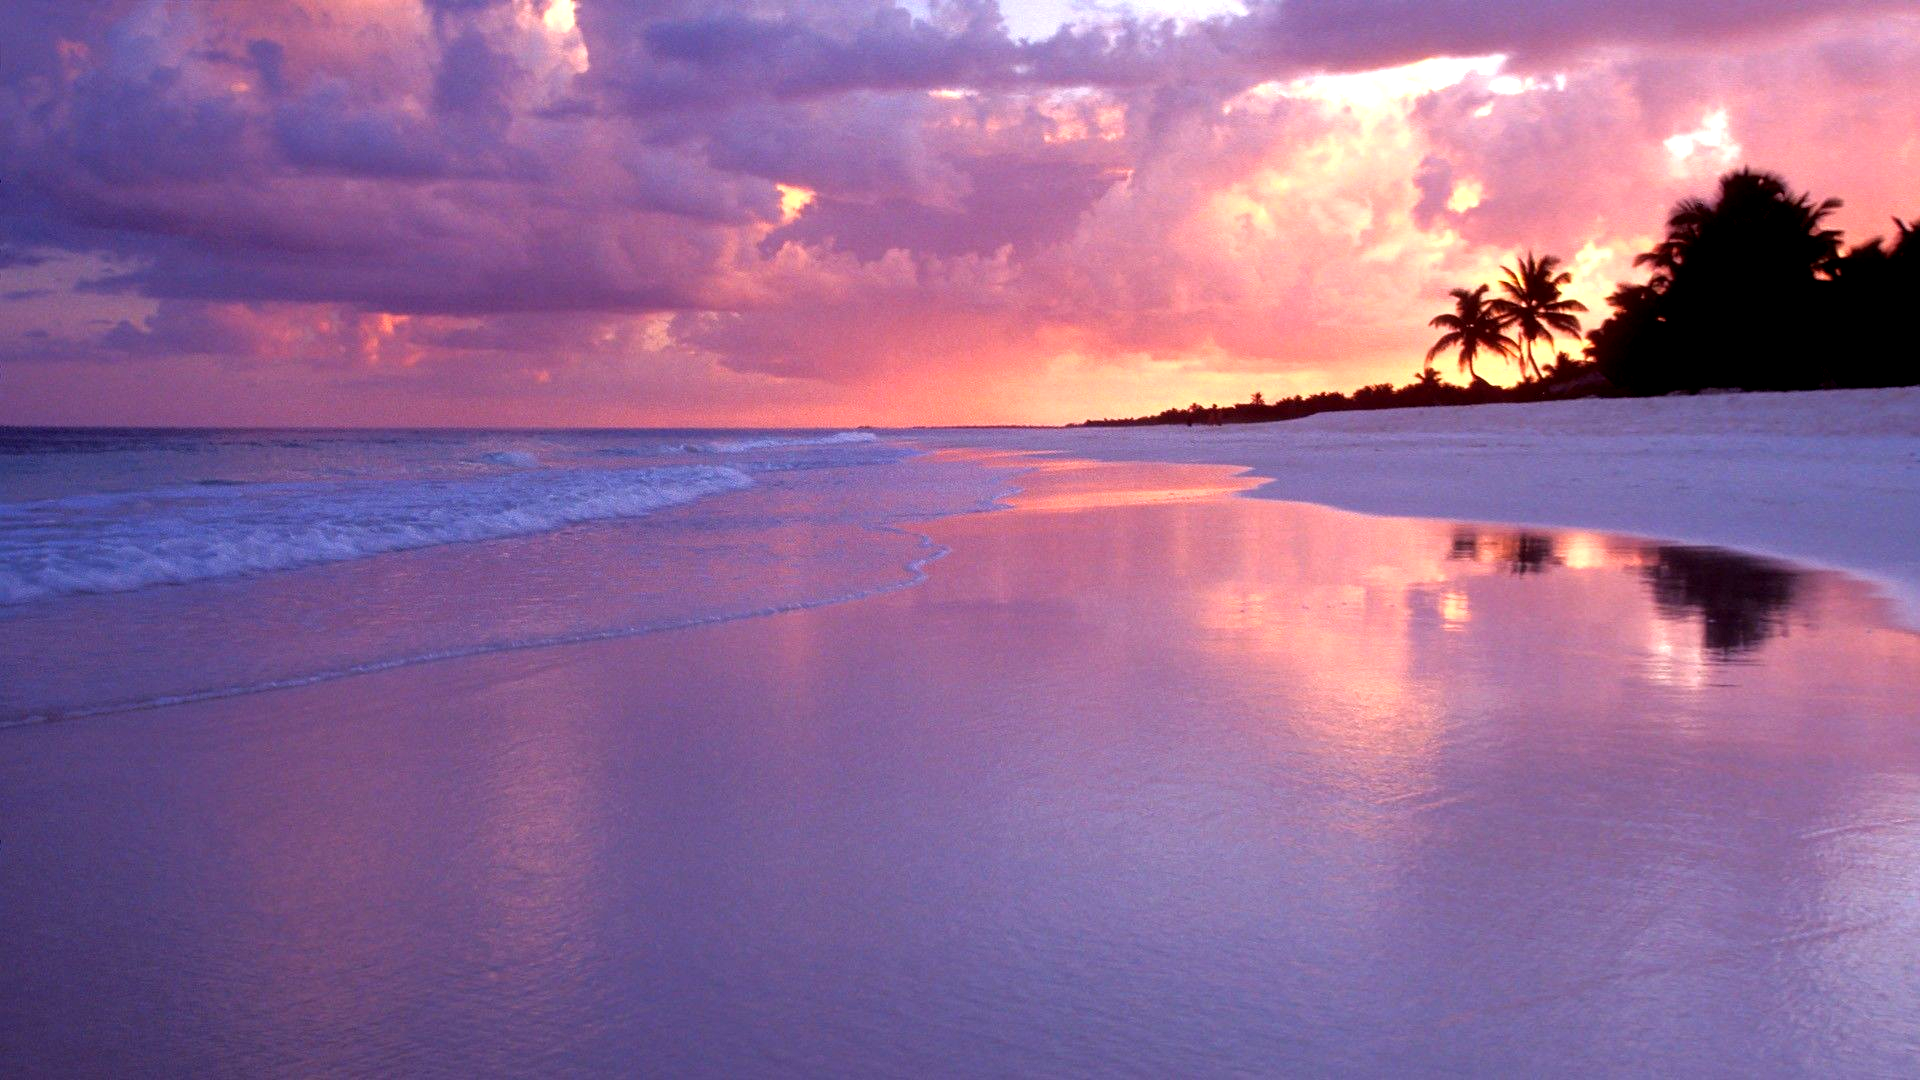 Beautiful Beach Sunset Wallpaper 1920x1080, Beautiful